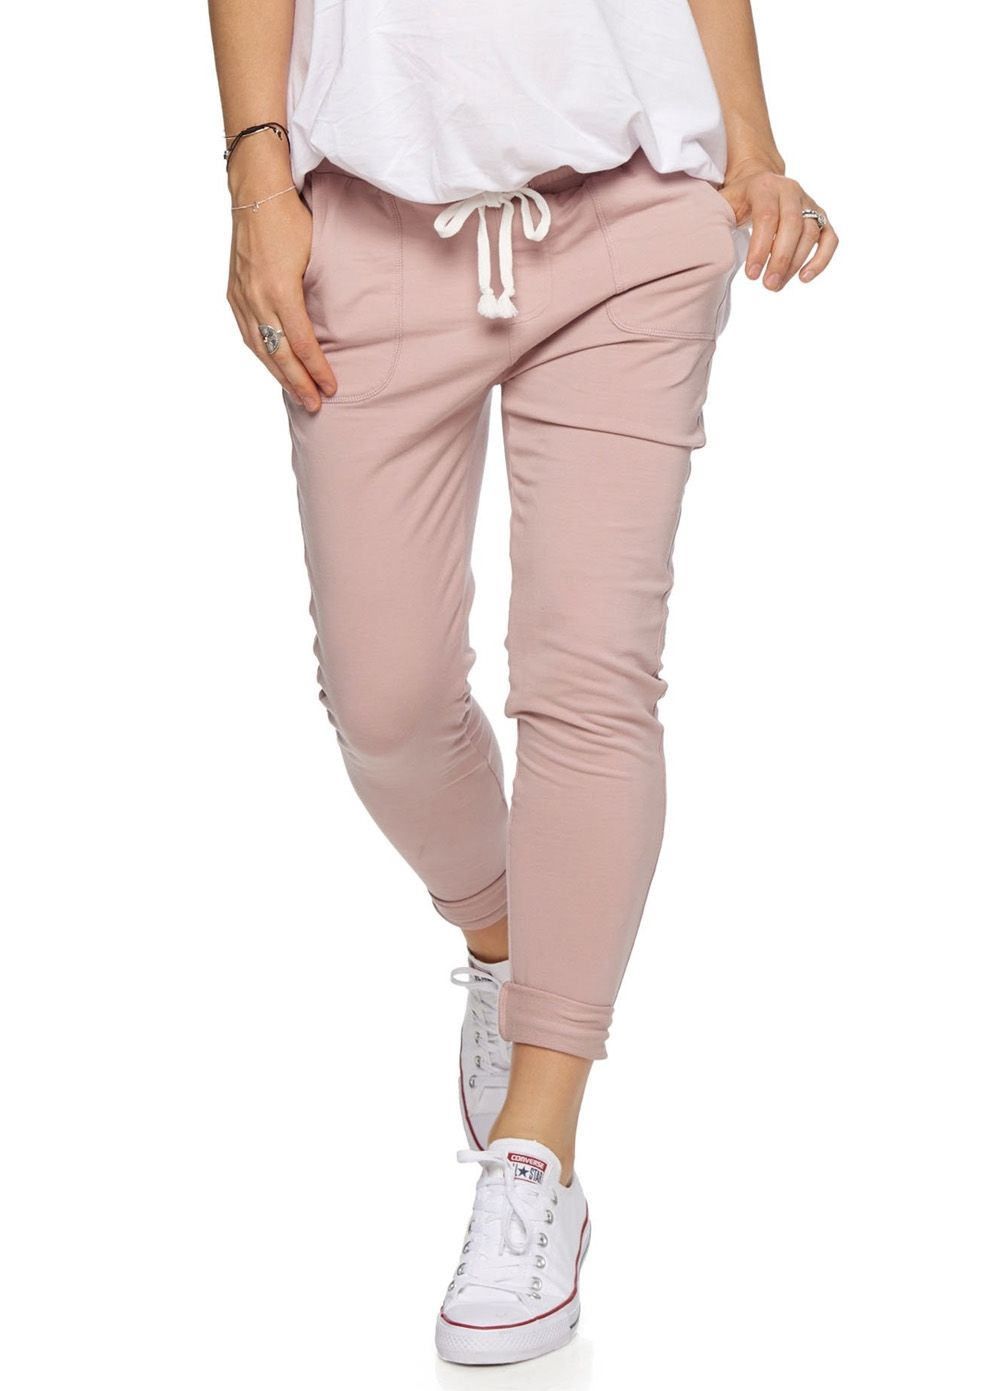 bc504079a3d9e Bae - Remember When Jogger in Musk Spring Maternity, Maternity Pants,  Maternity Fashion,